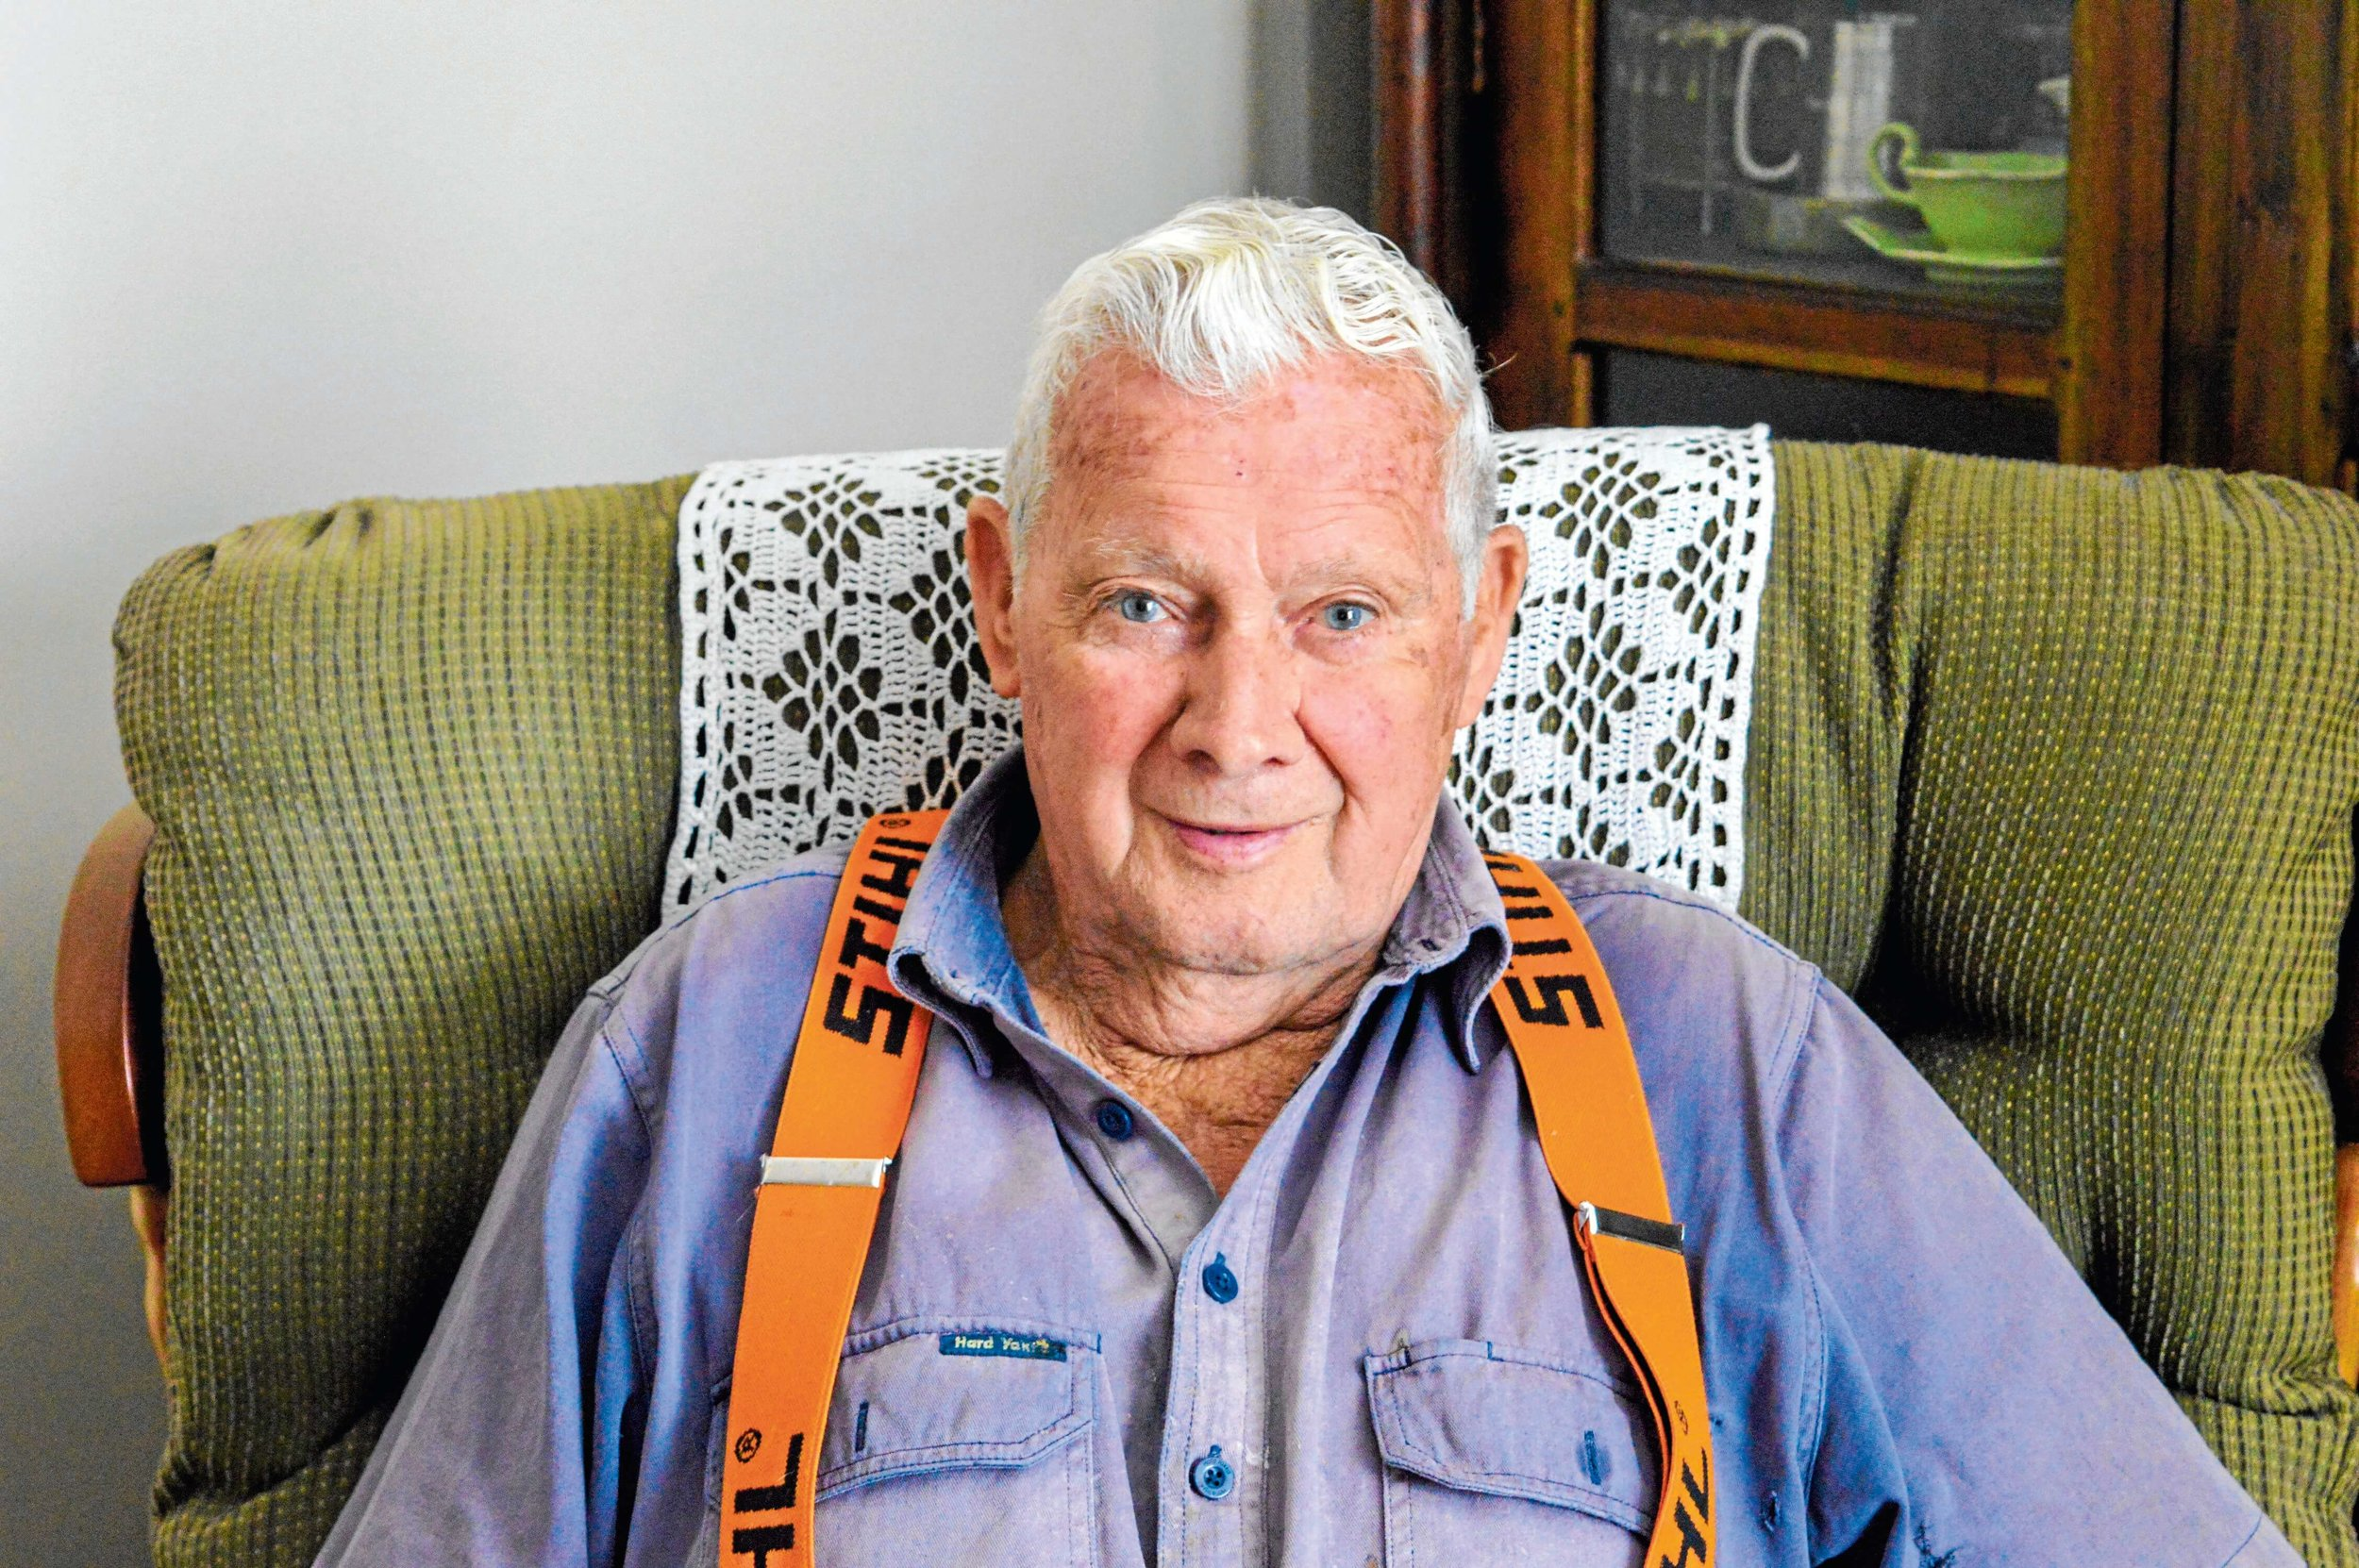 • Patrick Oldham has lived in Legerwood for the past 80 years, and says he's never thought about leaving.